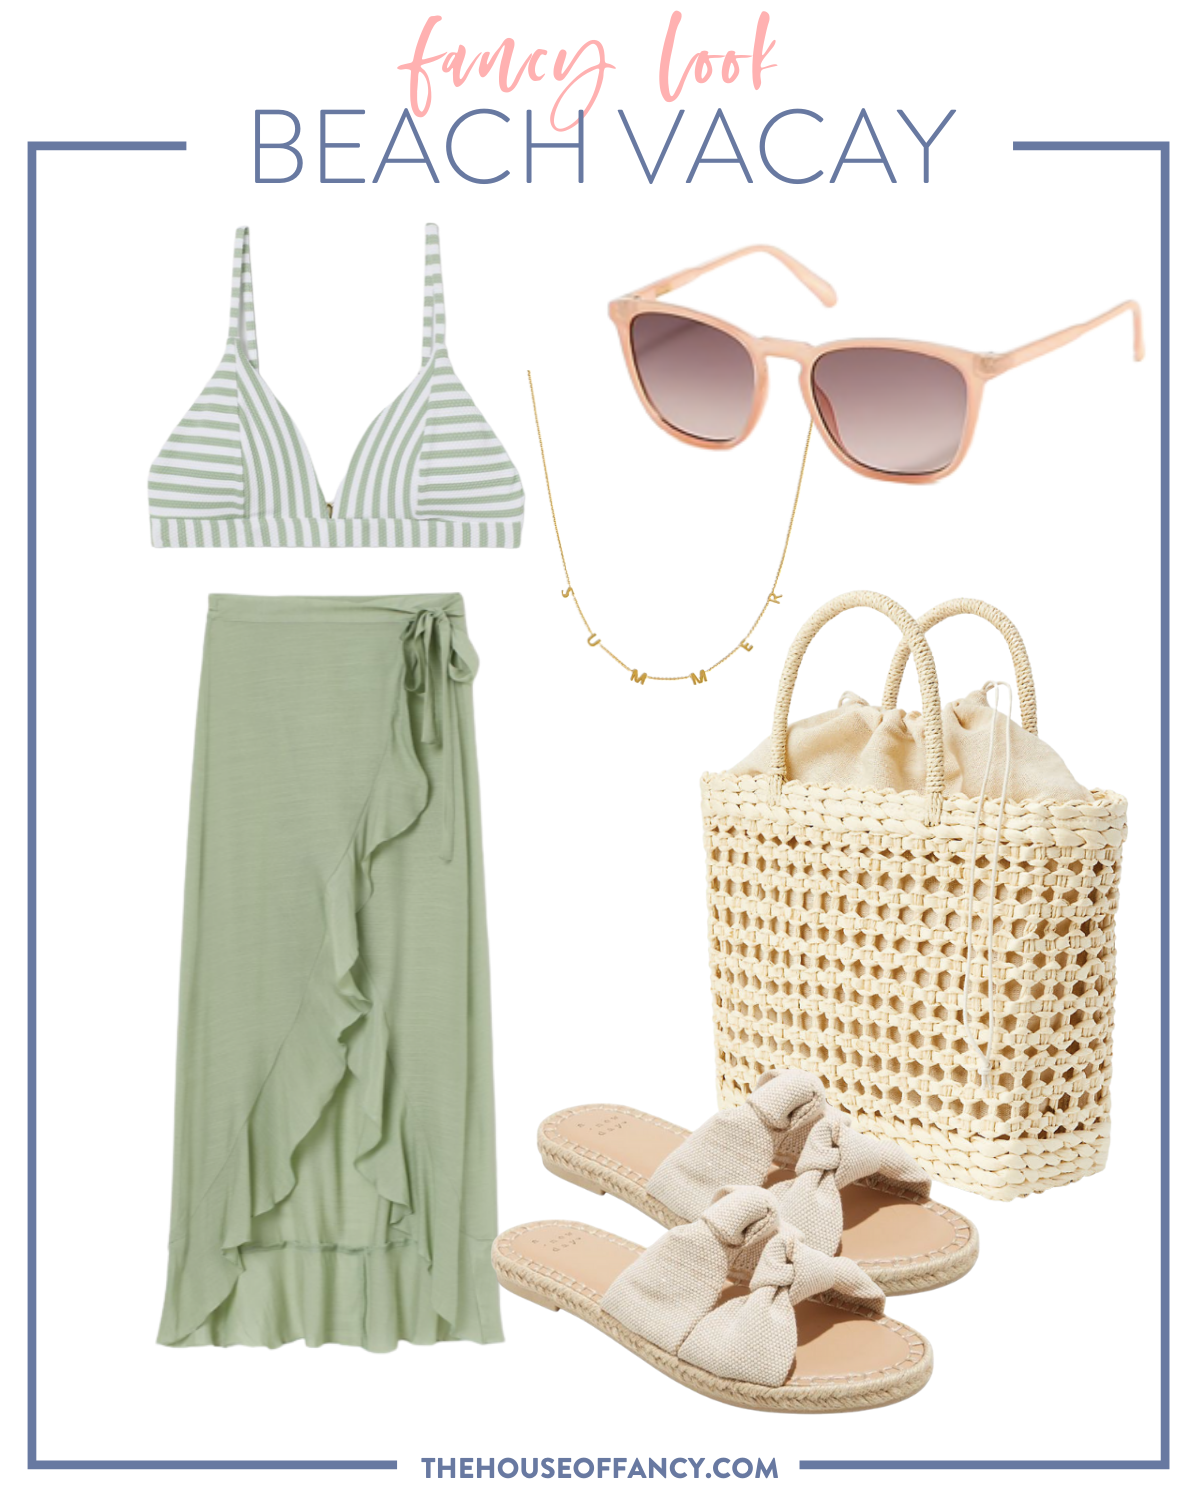 Summer Outfit Ideas by popular Houston fashion blog, The House of Fancy: collage image of a green and white stripe bikini top, green wrap maxi skirt, summer necklace, sunglasses, tan strap espadrille sandals, and woven tote.